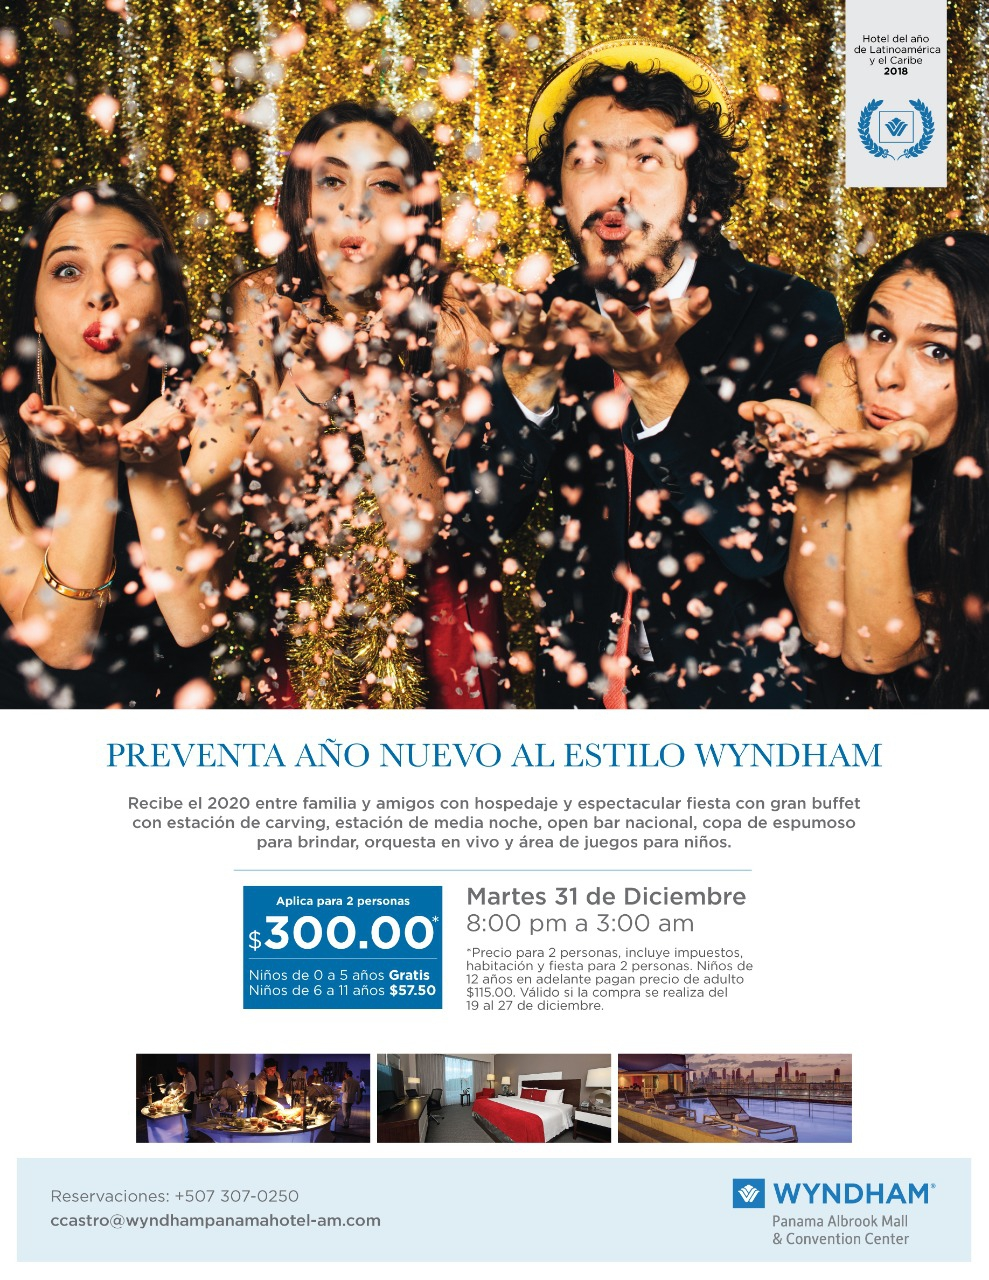 New Year's Eve at Wyndham